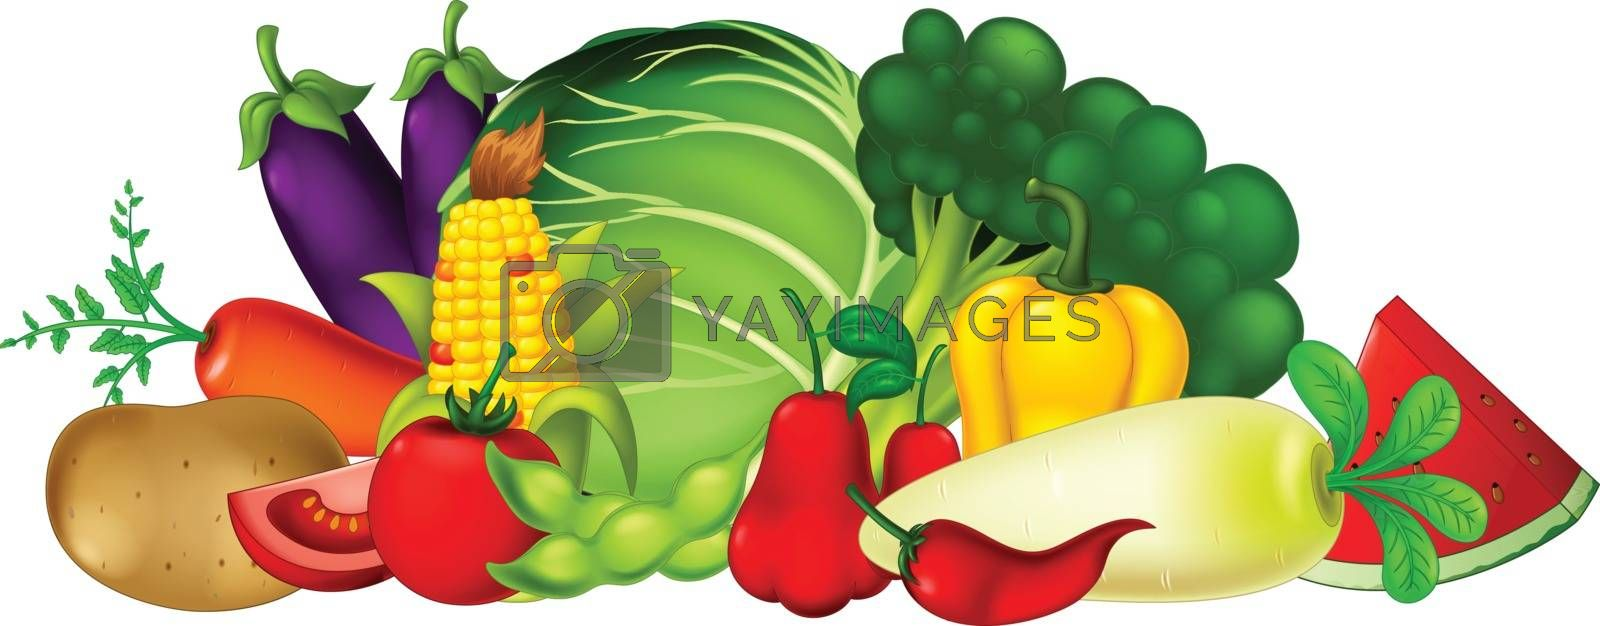 Royalty free image of Fresh Fruit and Vegetable Cartoon Collection Set by sujono